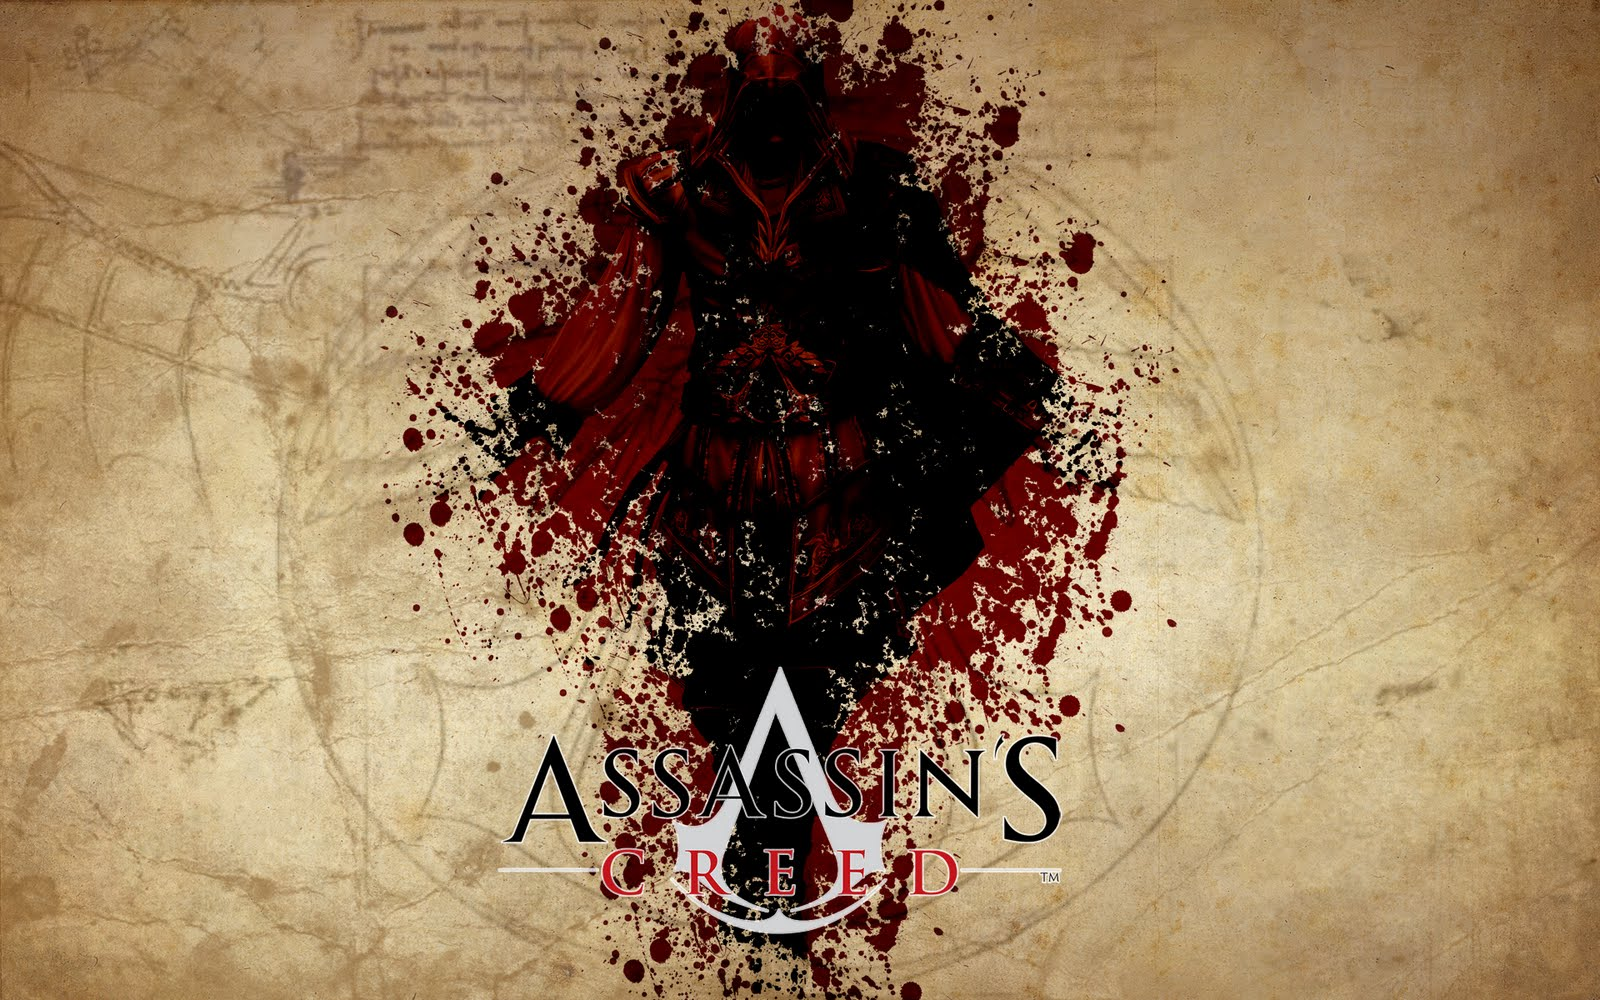 http://2.bp.blogspot.com/_2UbsSBz9ckE/S3NIZ4iZ4tI/AAAAAAAAAxA/q_eiNr75ypo/s1600/Assassins_Creed_2_Wallpaper_HD.jpg